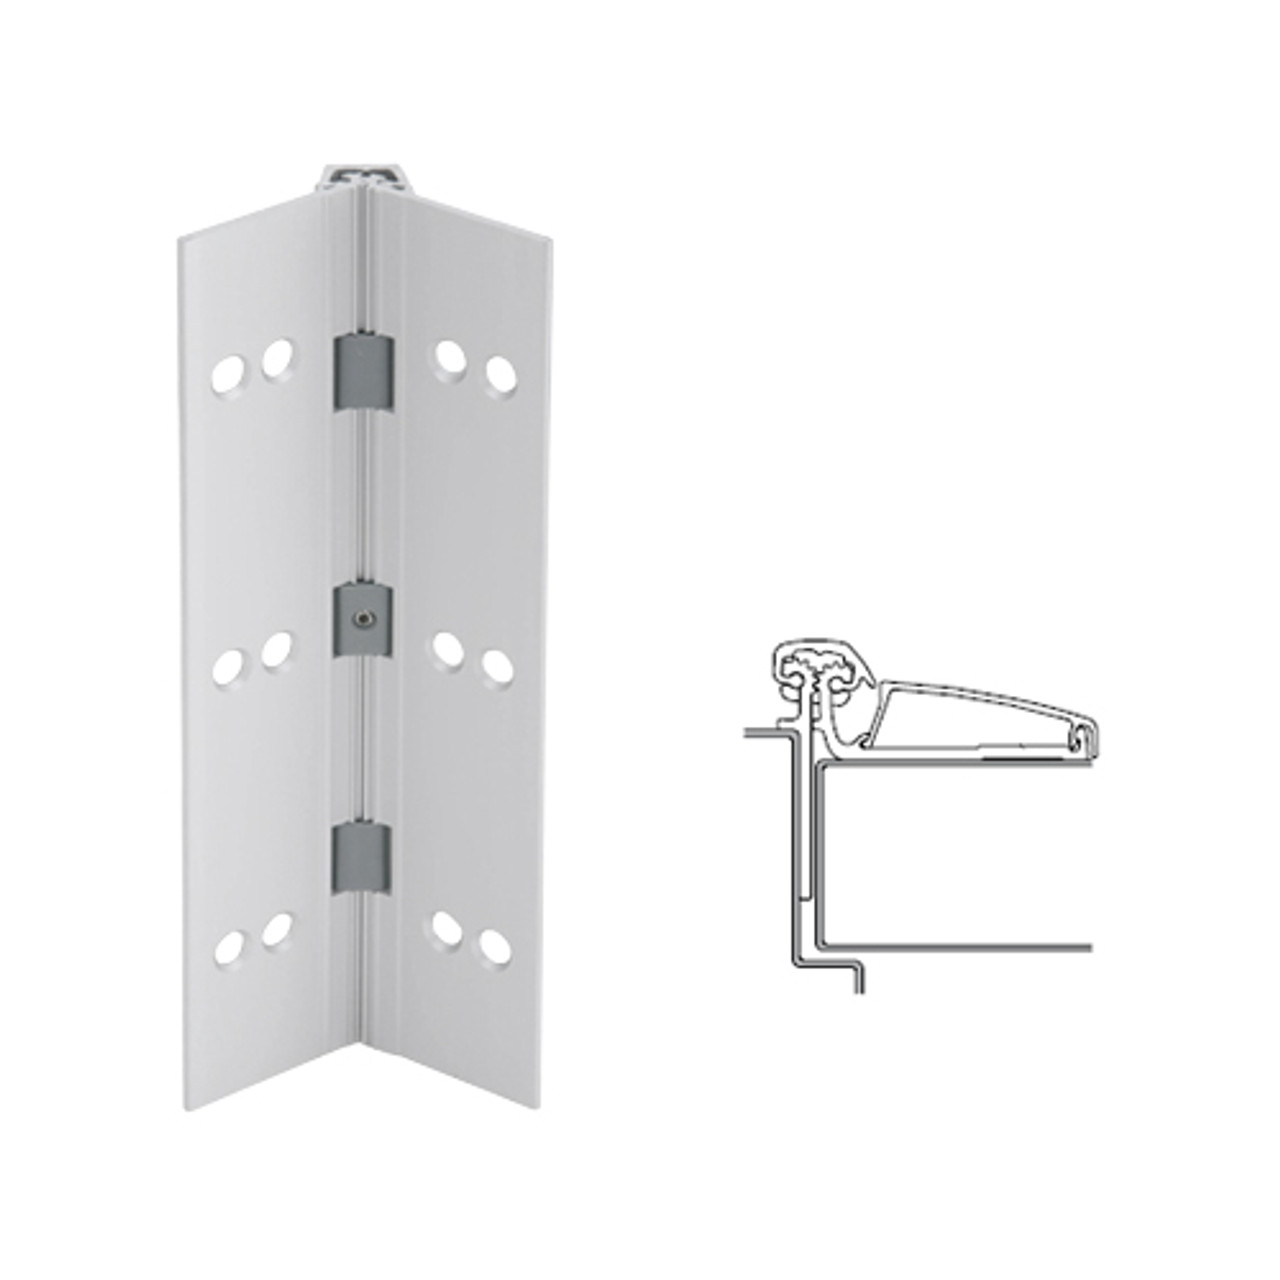 045XY-US28-95 IVES Adjustable Half Surface Continuous Geared Hinges in Satin Aluminum